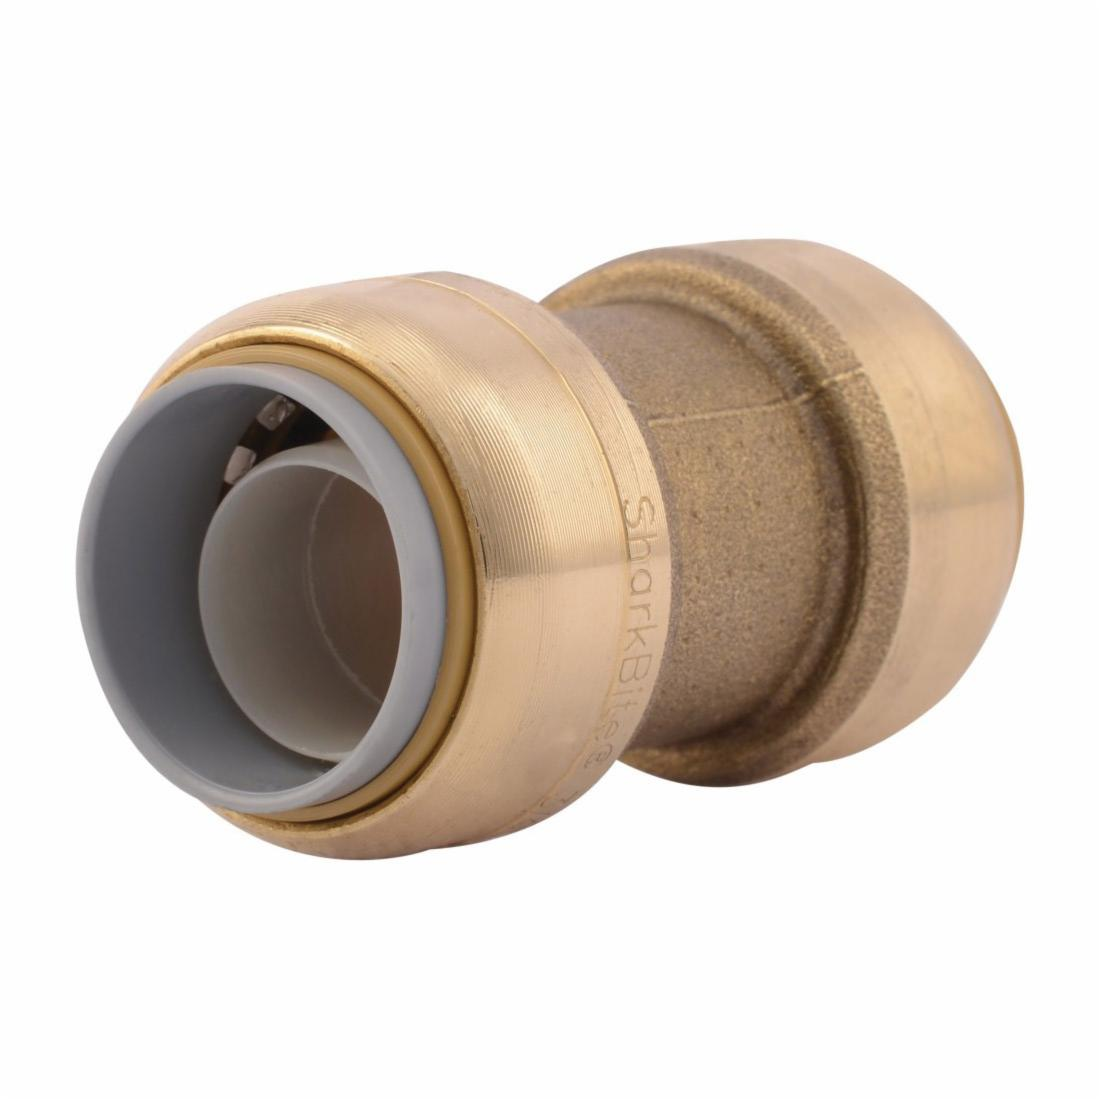 Sharkbite® U4016LF Transition Coupling, 3/4 in, Push-Fit, Brass, Natural Brass/Chrome Plated, Import